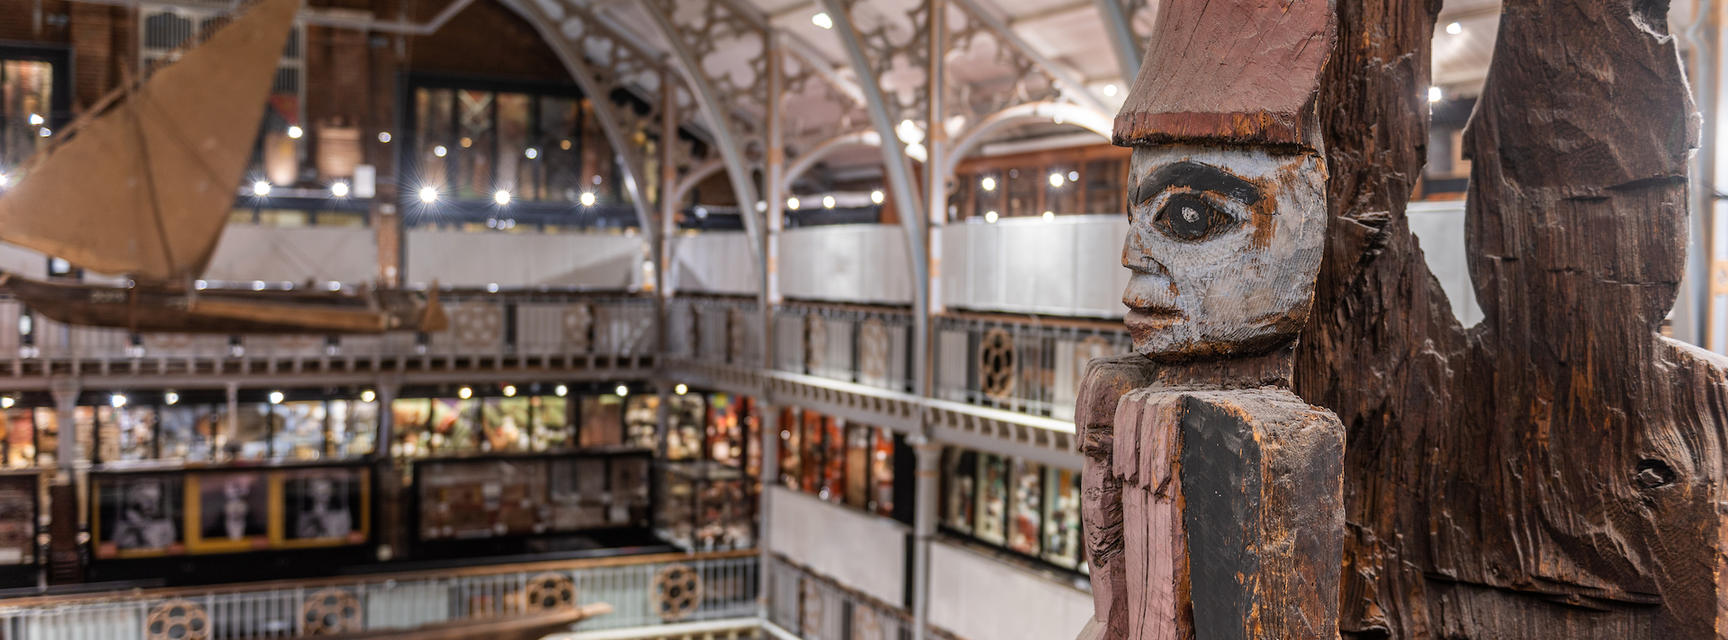 pitt rivers 16 12 20 39 copy